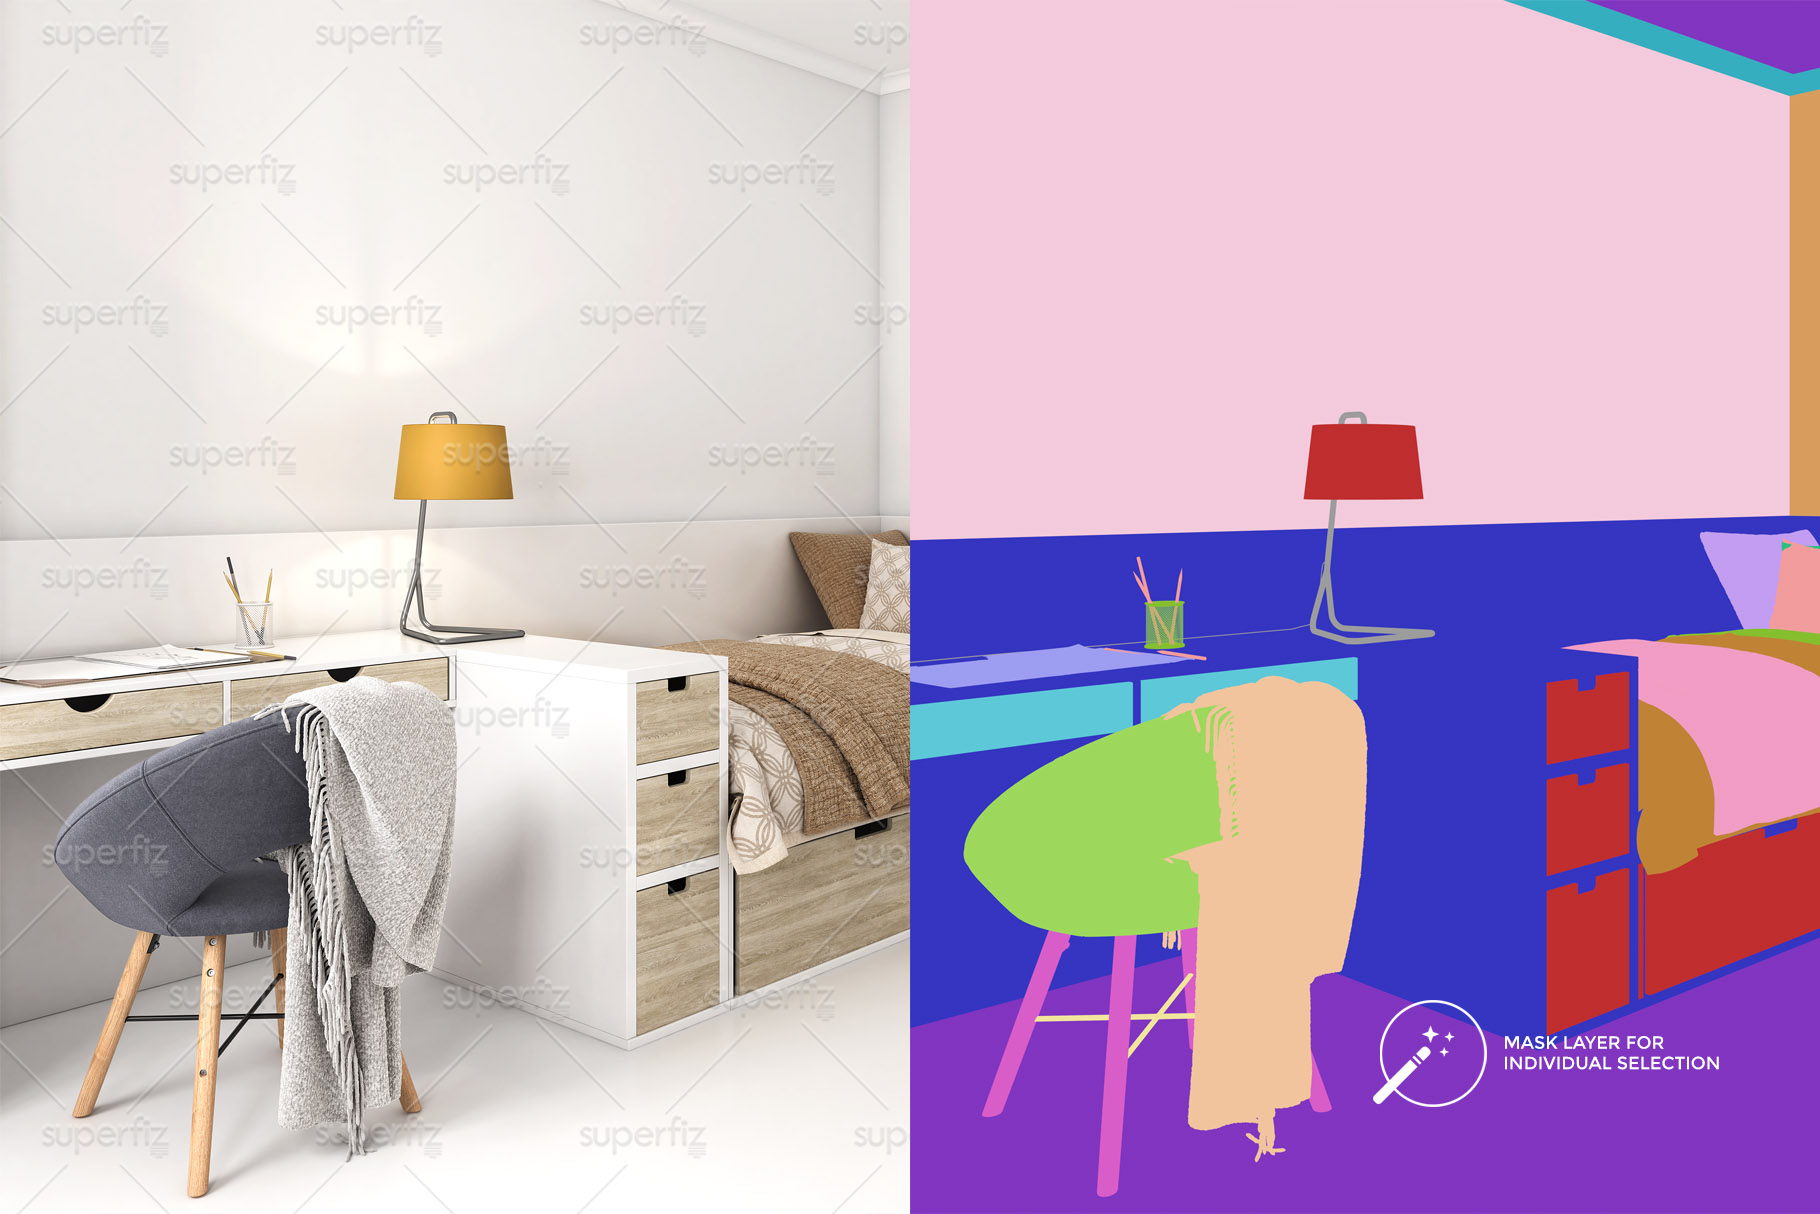 Wallpaper, floor and carpet Mockup Kids Bedroom SM62 example image 2